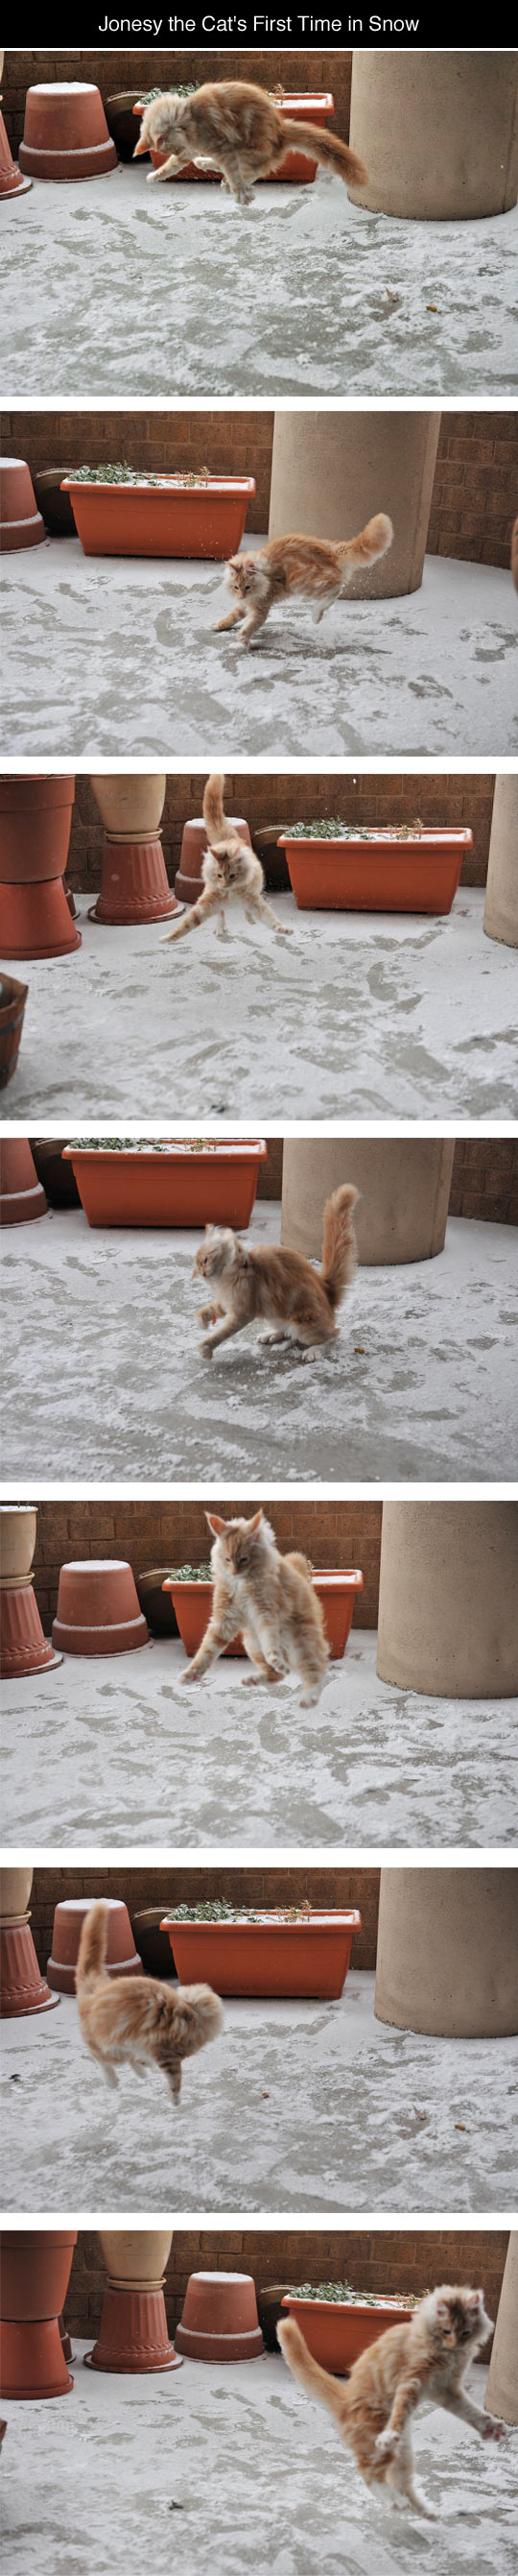 Cat Discovers Snow